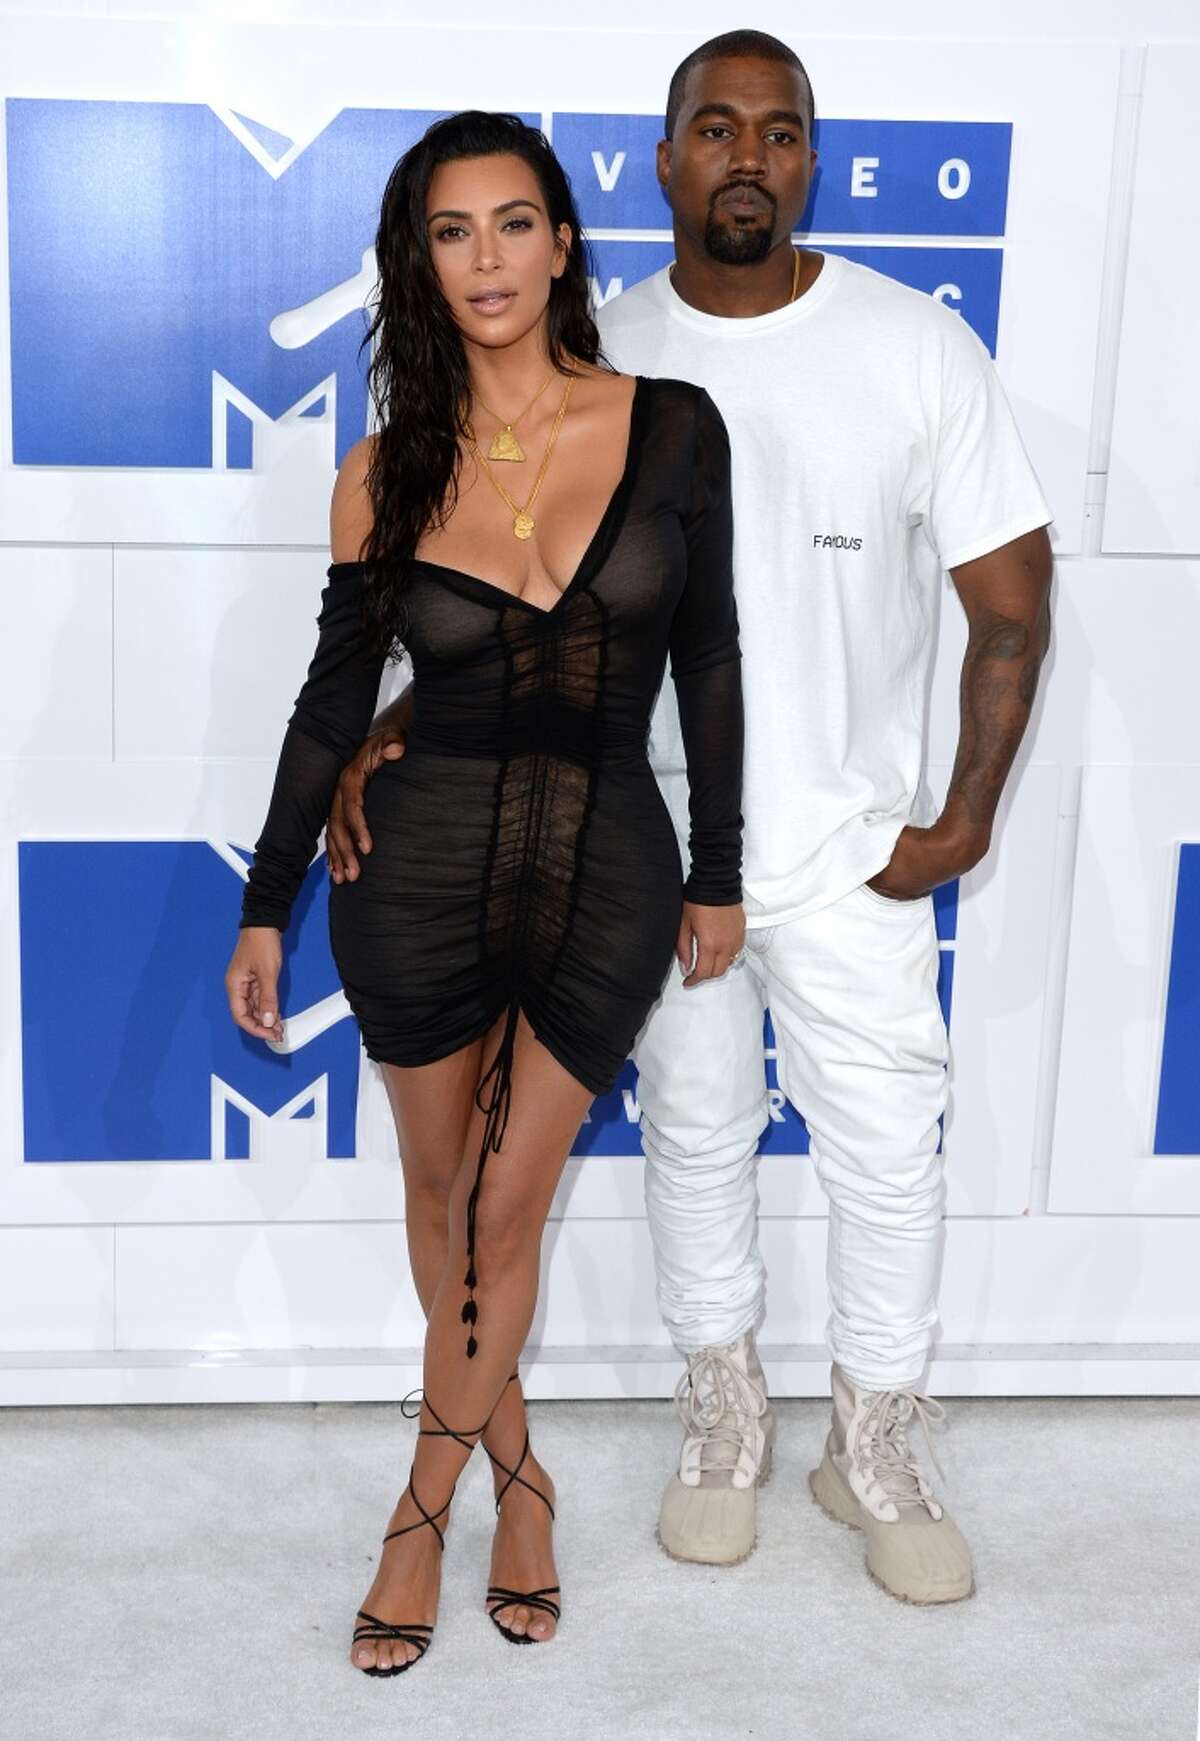 Kim Kardashian and Kanye West attend the 2016 MTV Video Music Awards at Madison Square Garden on August 28, 2016 in New York City.